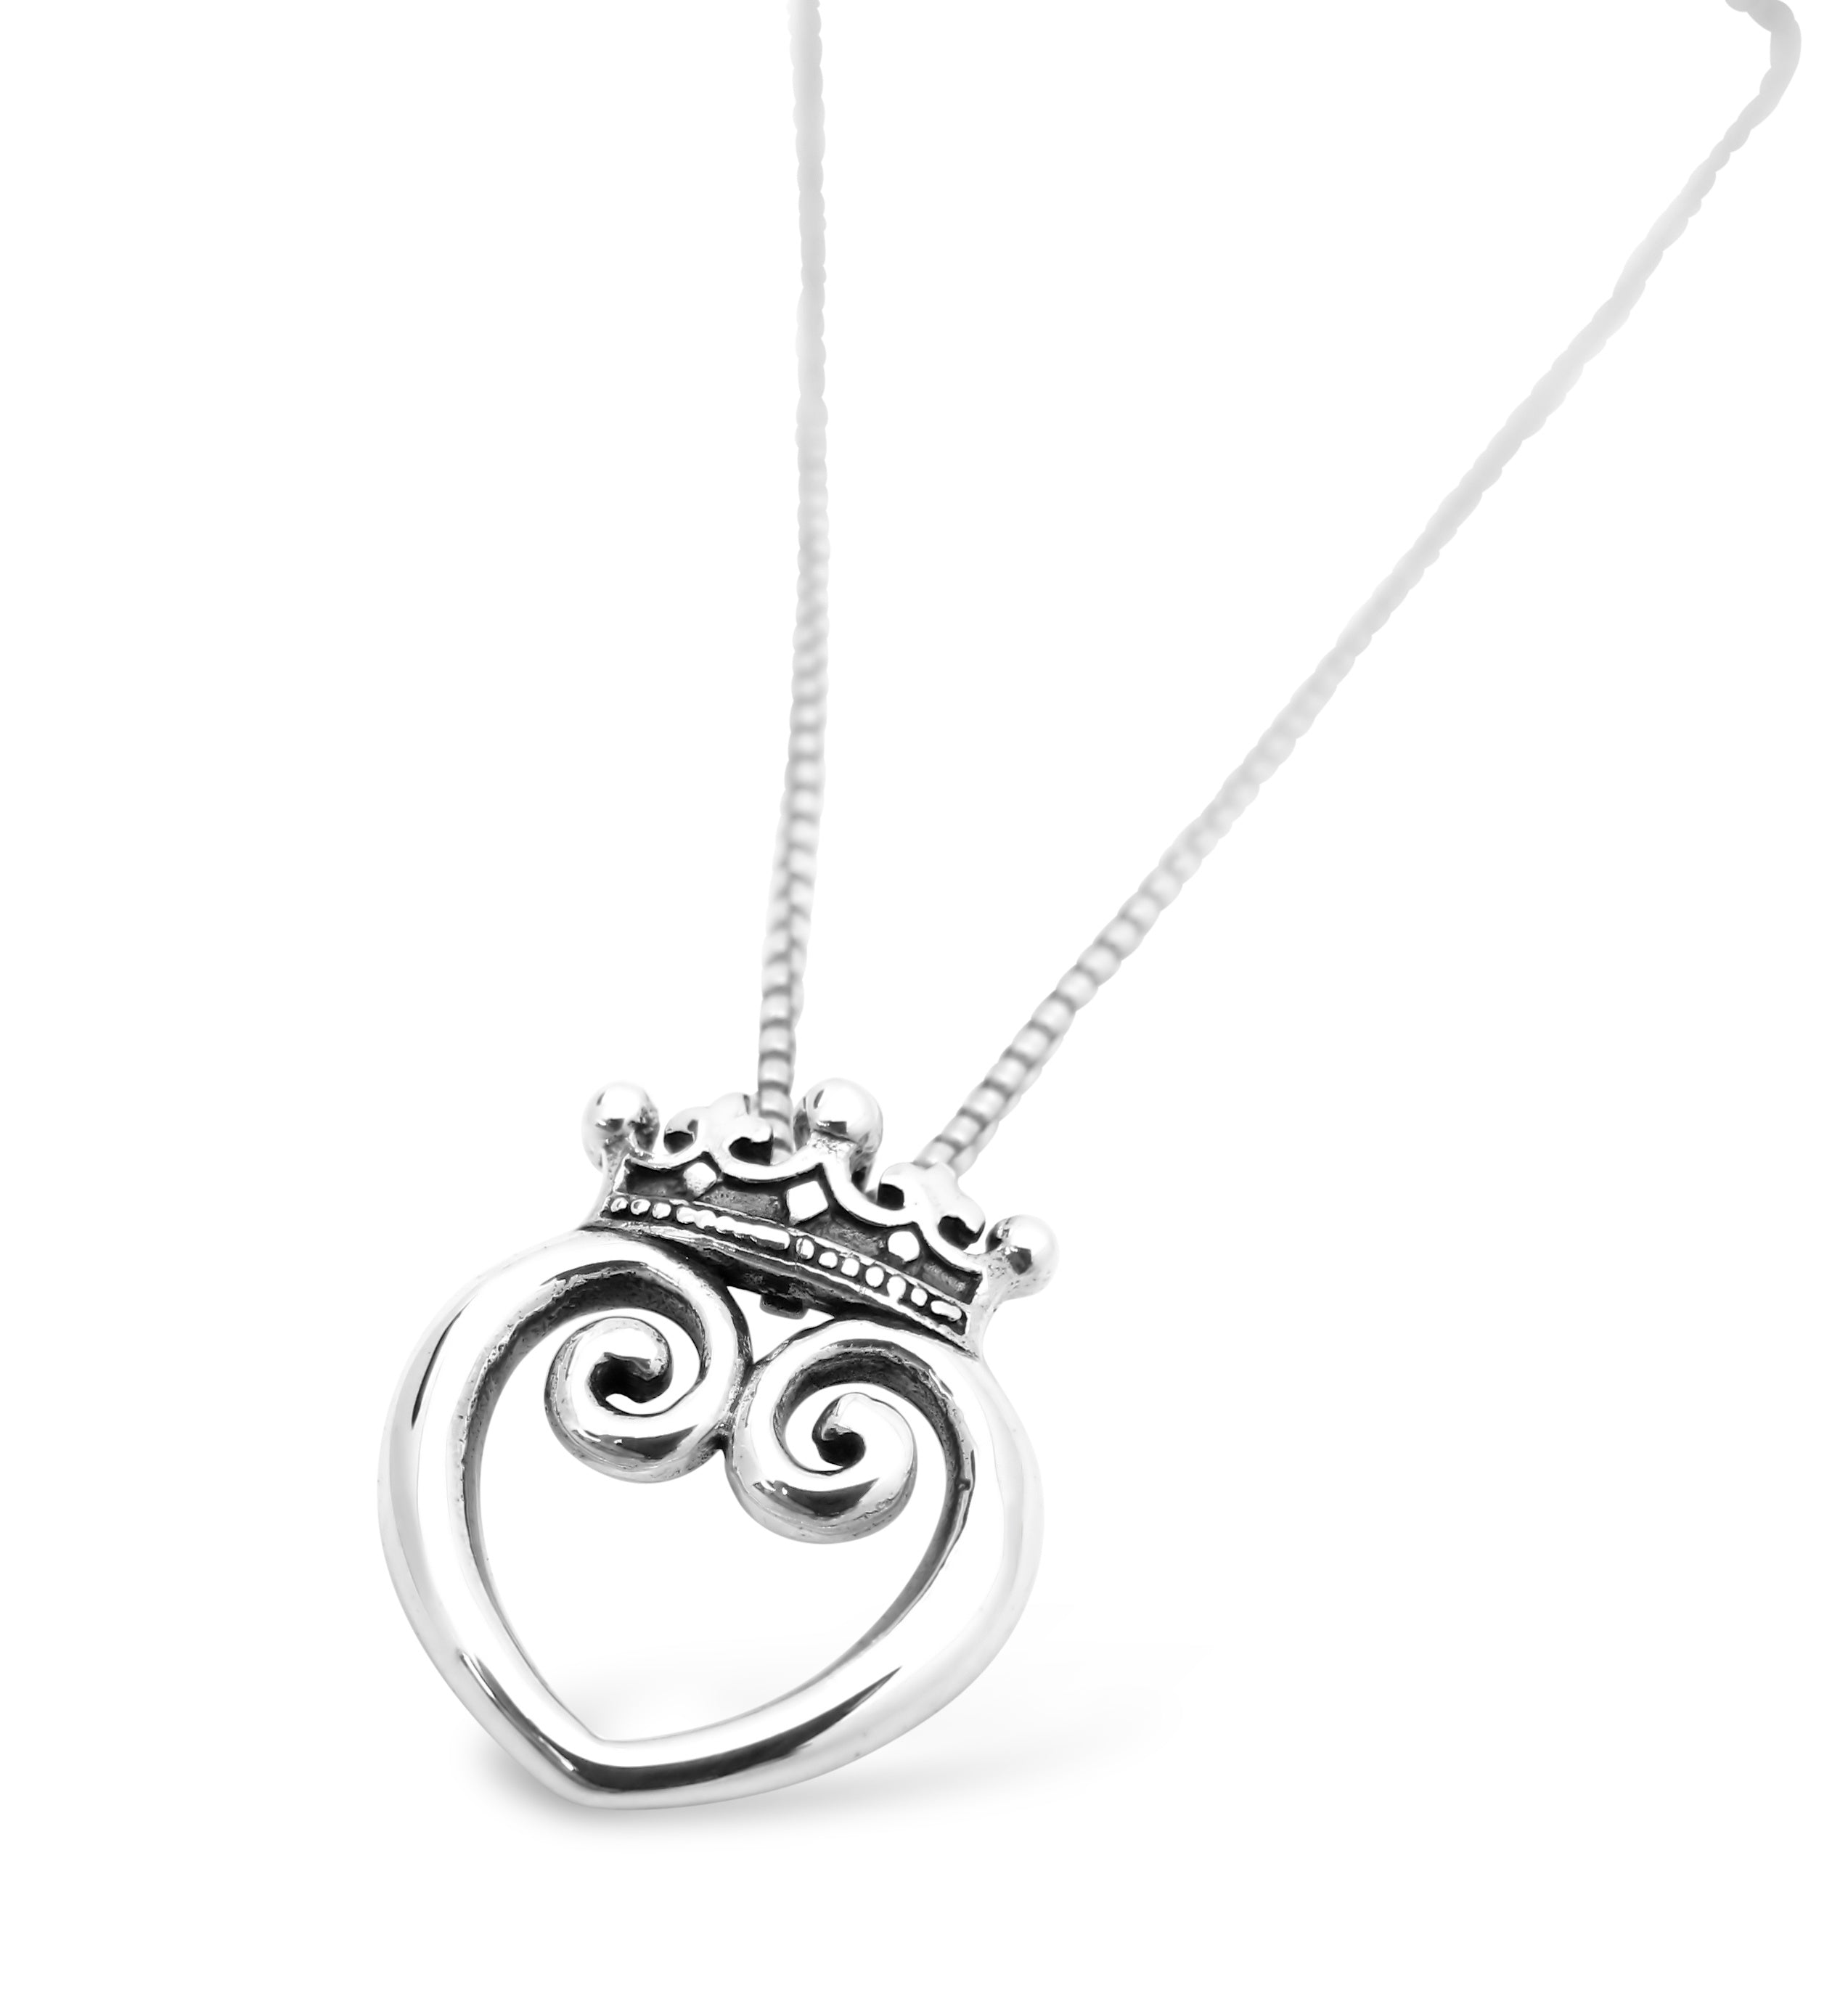 Queen of Hearts Pendant - Small